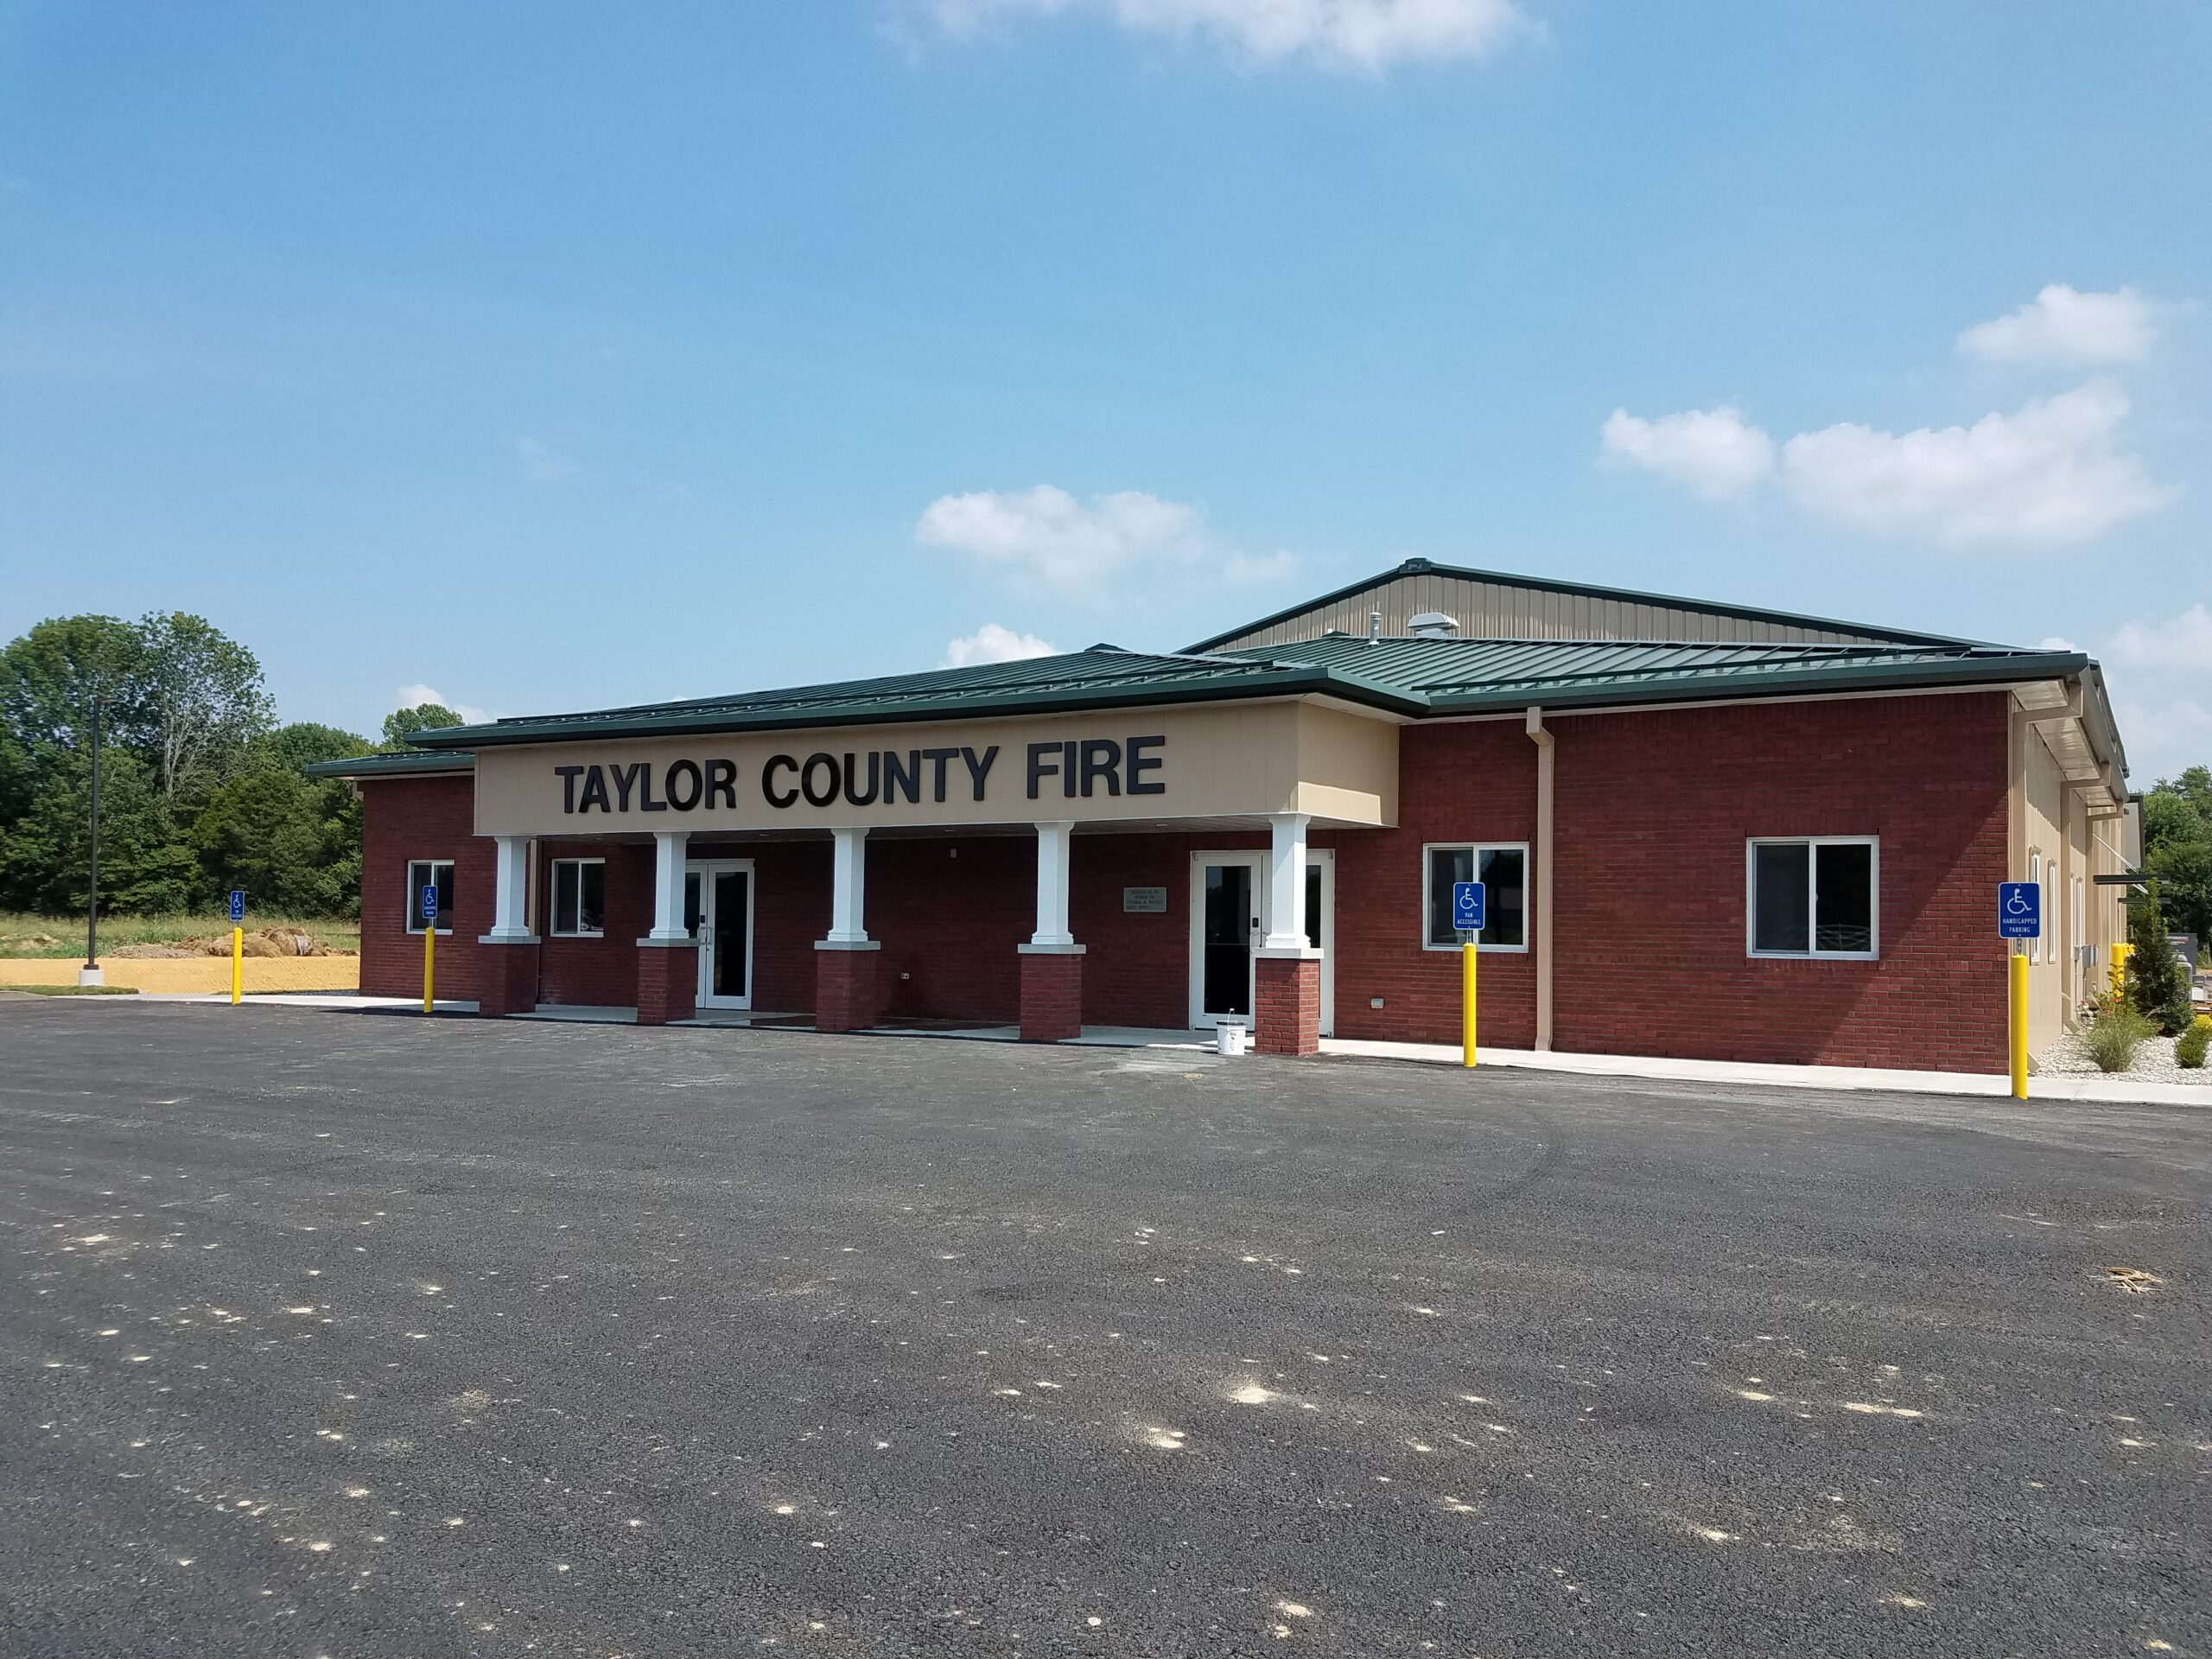 Taylor County Fire